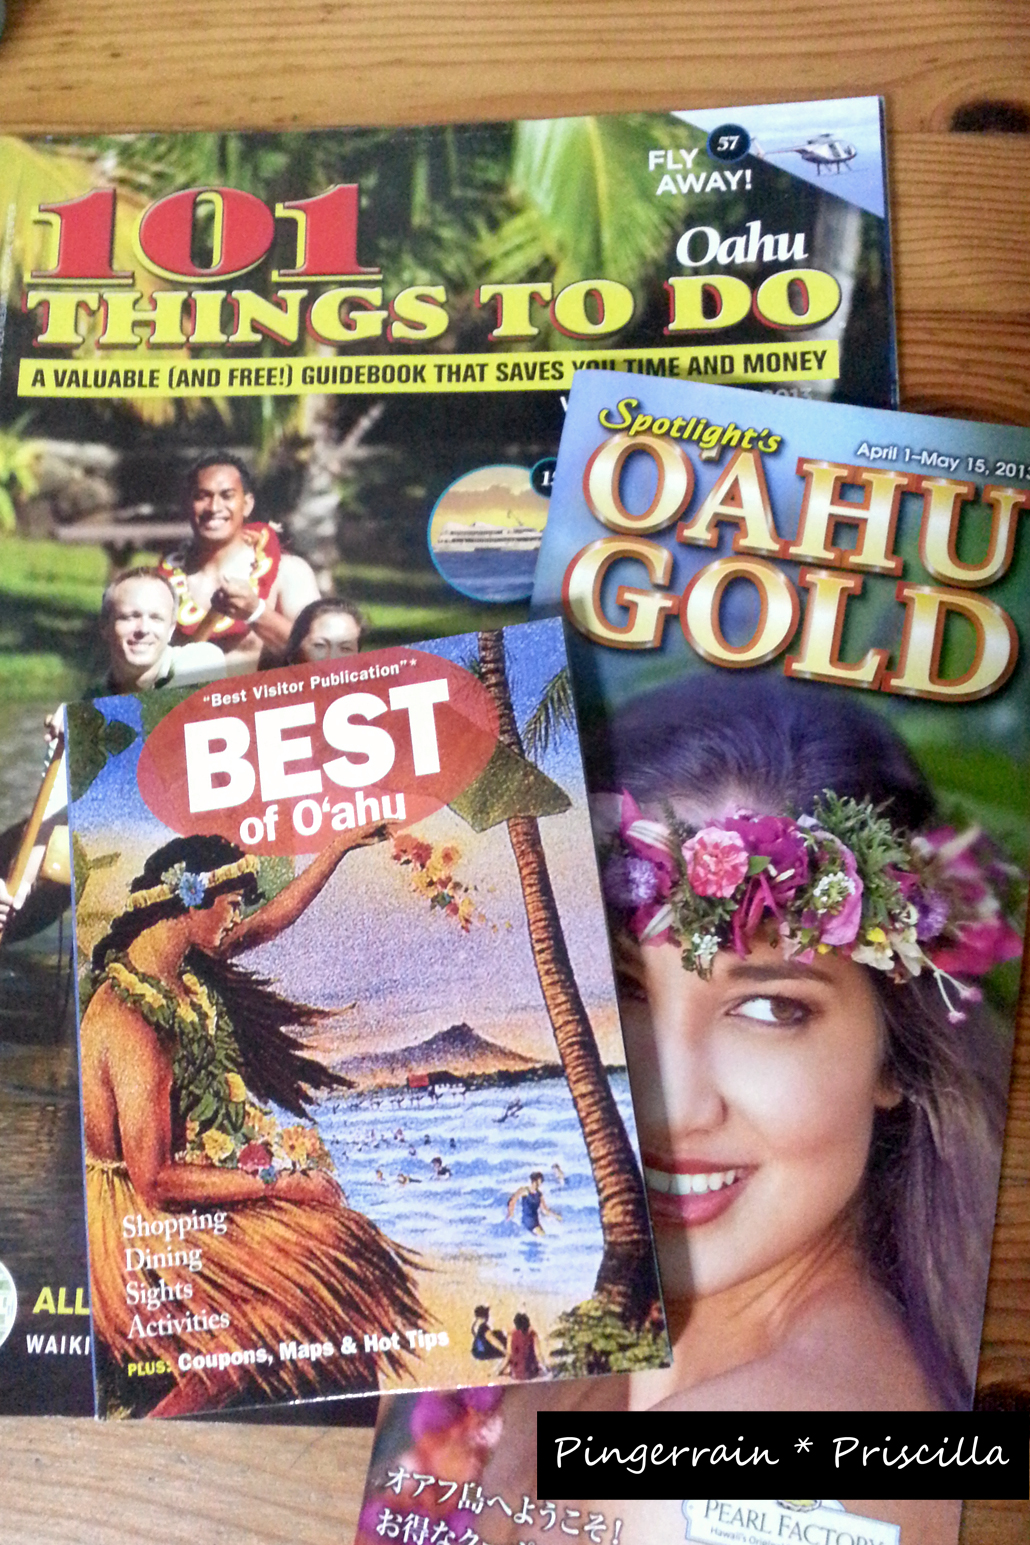 Guides I had picked up at Island Colony Hotel in Hawaii